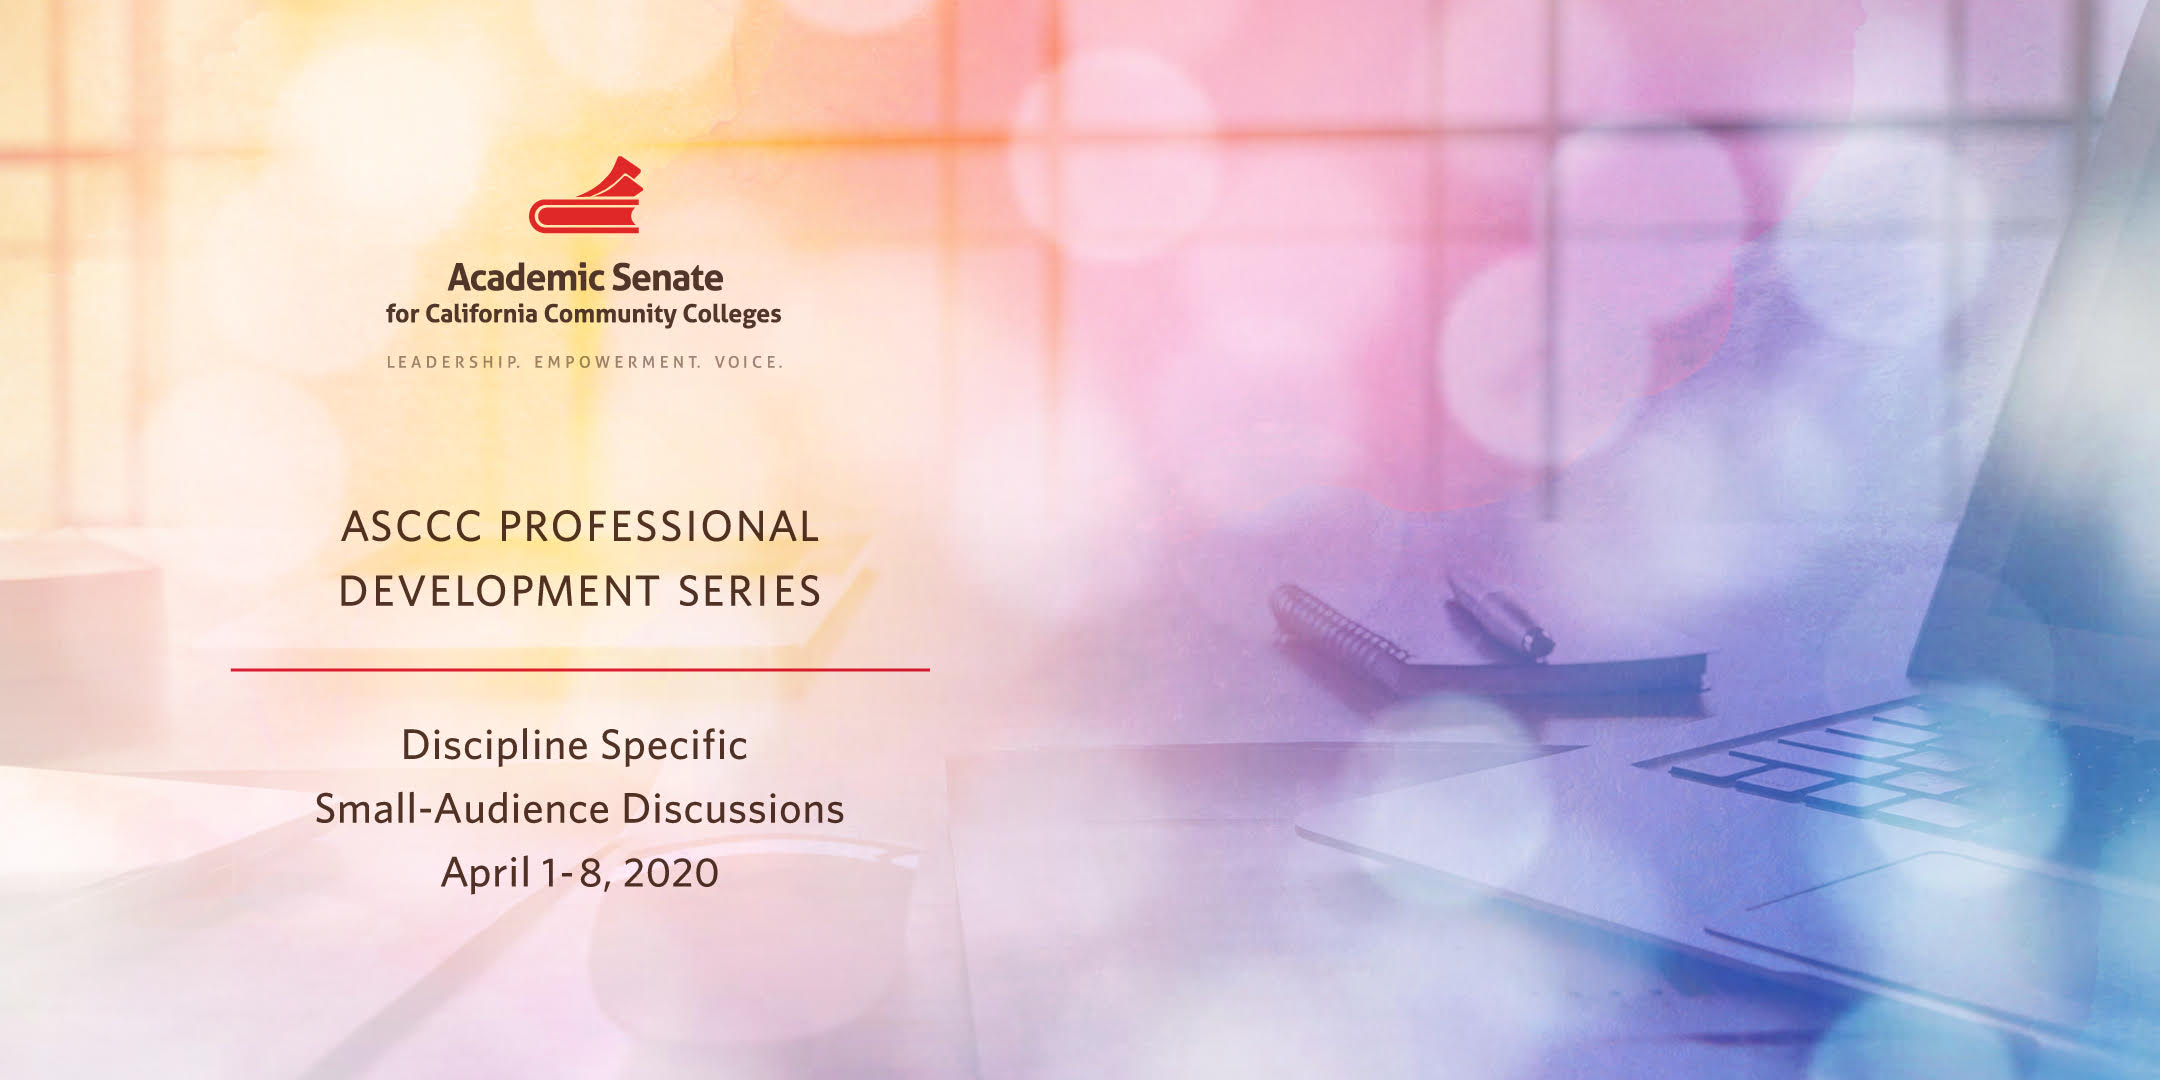 ASCCC Professional Development Series Banner Image